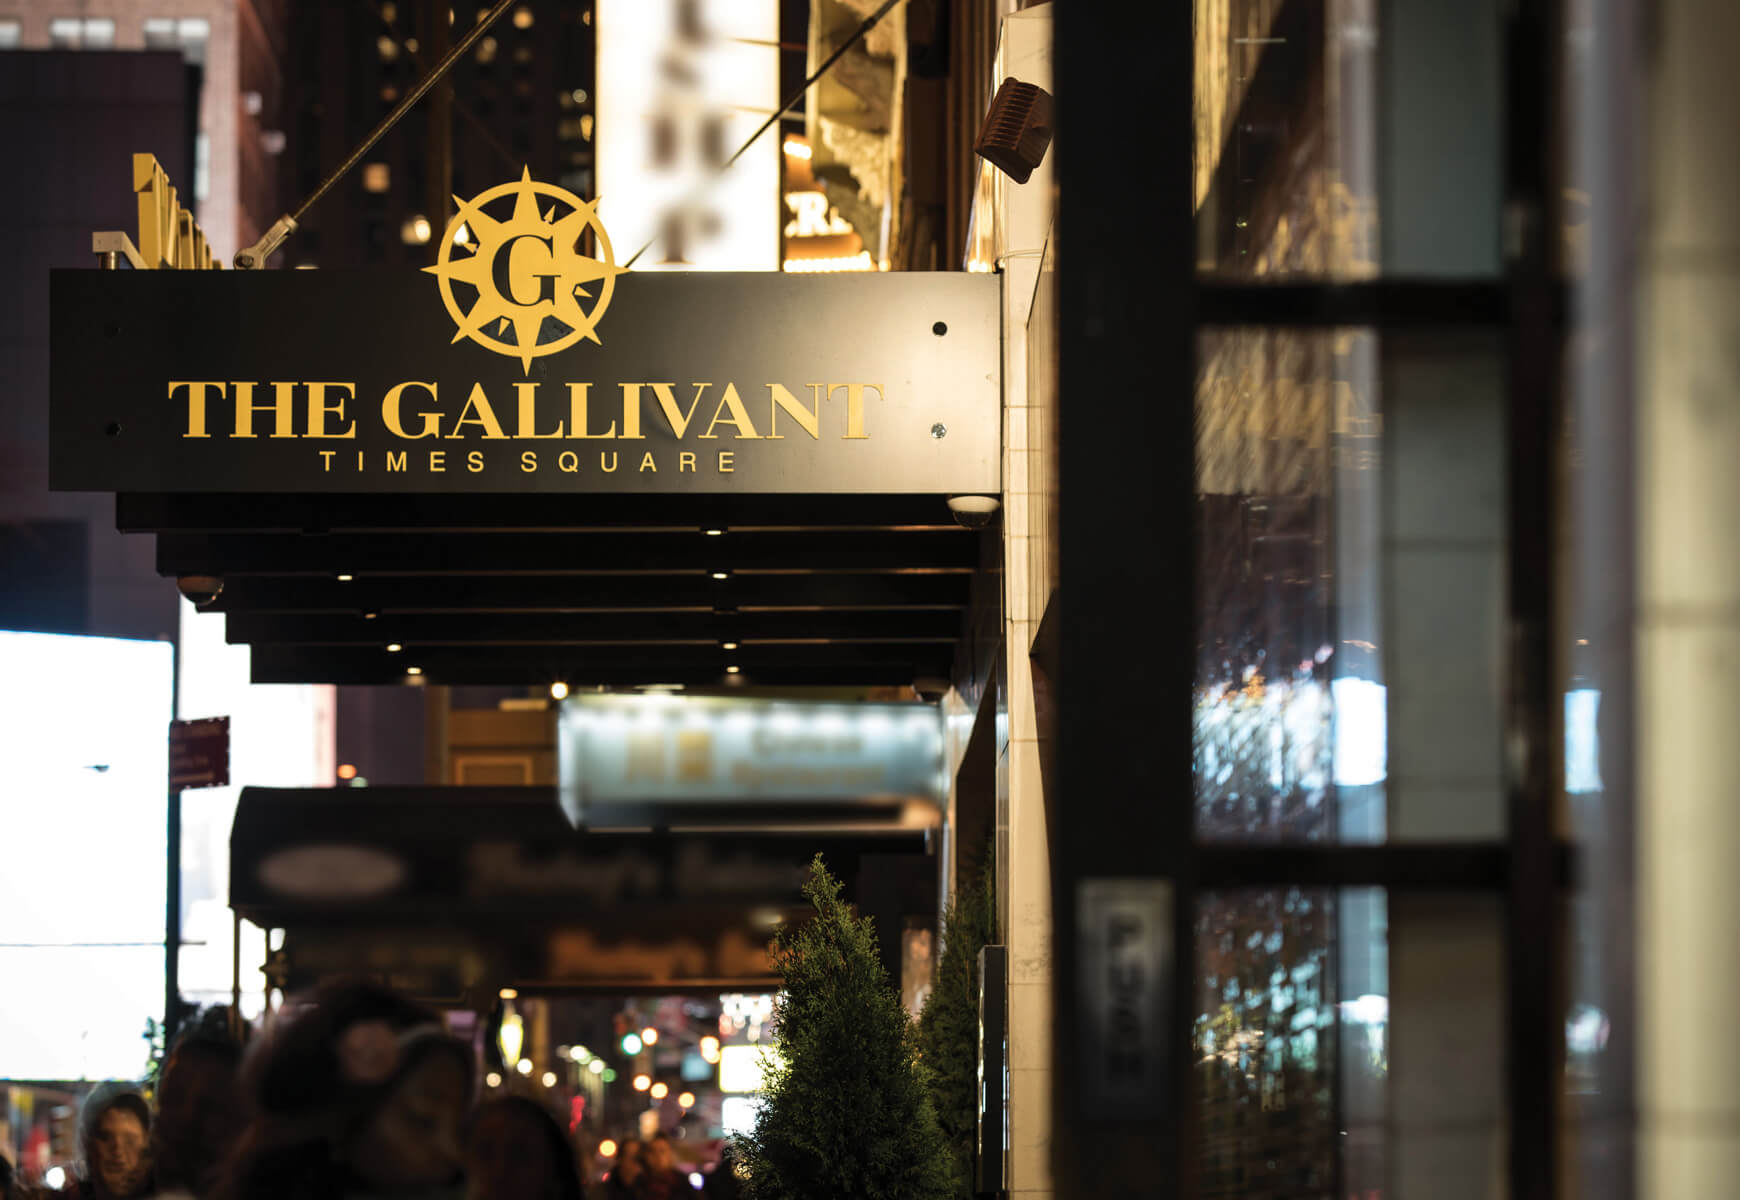 The Gallivant Front entrance as viewed from the sidewalk